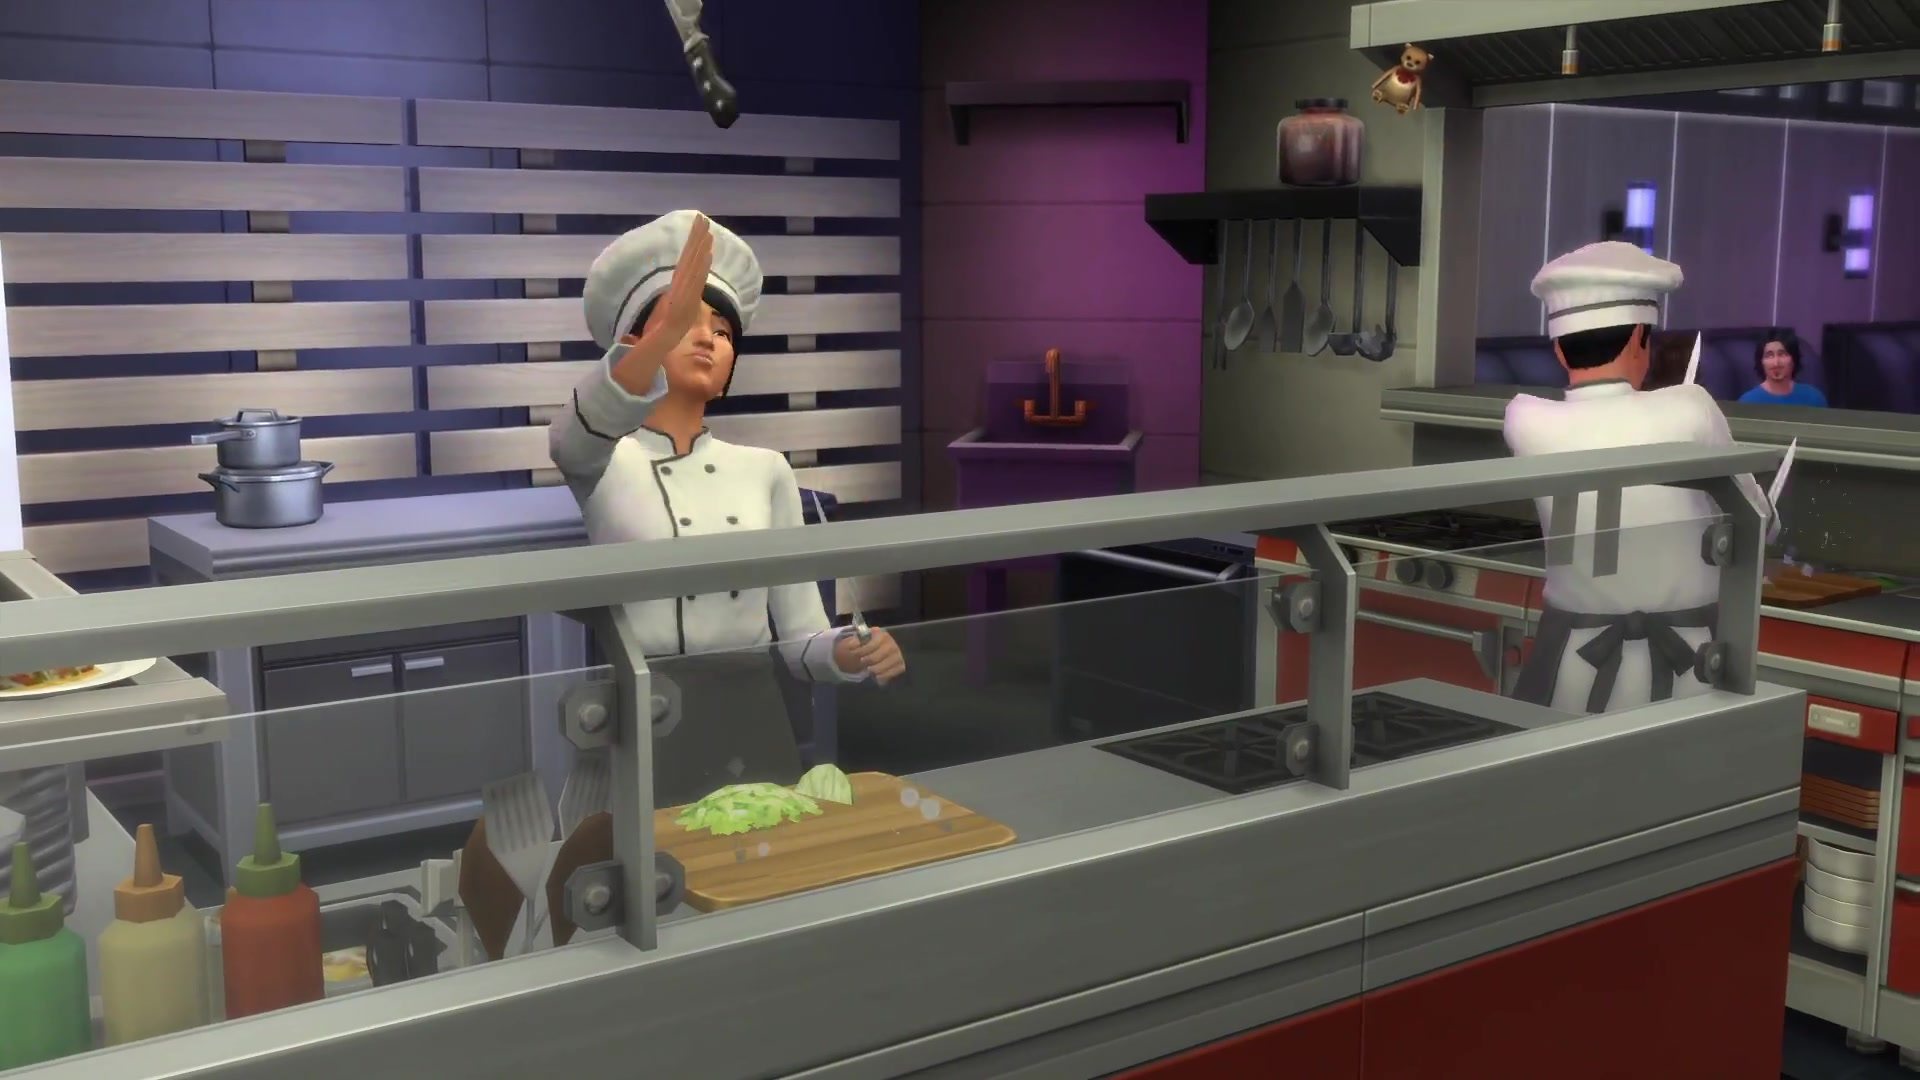 Cuisine Gameplay The Sims 4 Dine Out Official Gameplay Gifs Simsvip